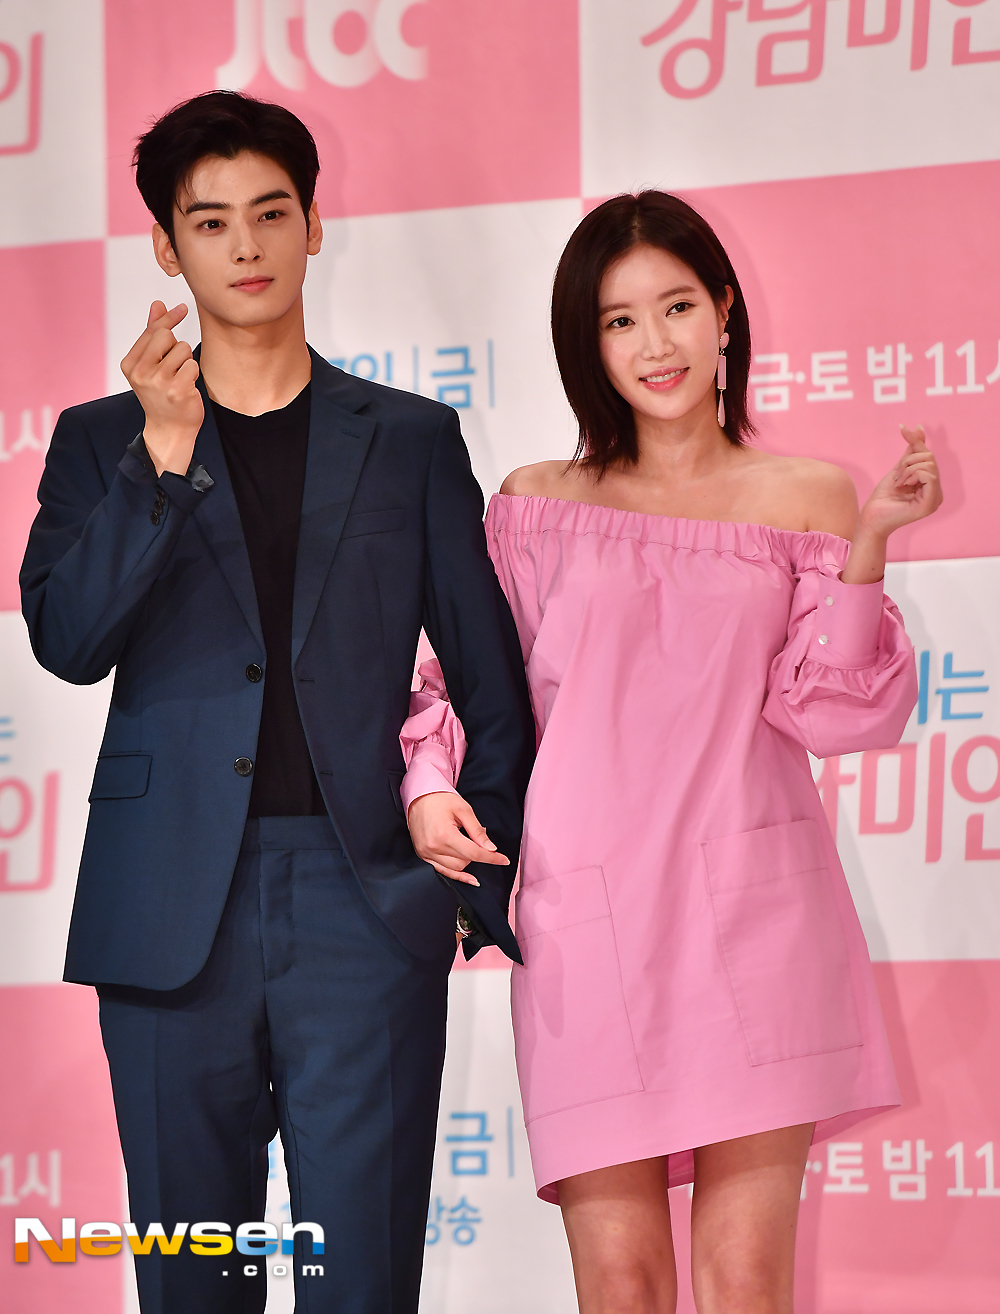 <p>JTBC New Gumdorama My name is Ginnami beauty production presentation was held on July 26 afternoon at Youngpuola Time Square Amoris Hall in Seoul Yeongdeungpo Ward</p><p>Cha Eun-woo Im Soo-hyang on this day responds to the photo pose.</p><p>Director of Choi Seongbum, Im Soo-hyang, Cha Eun-woo, Joe and Kwak Dong-yeon participated in the production presentation.</p>